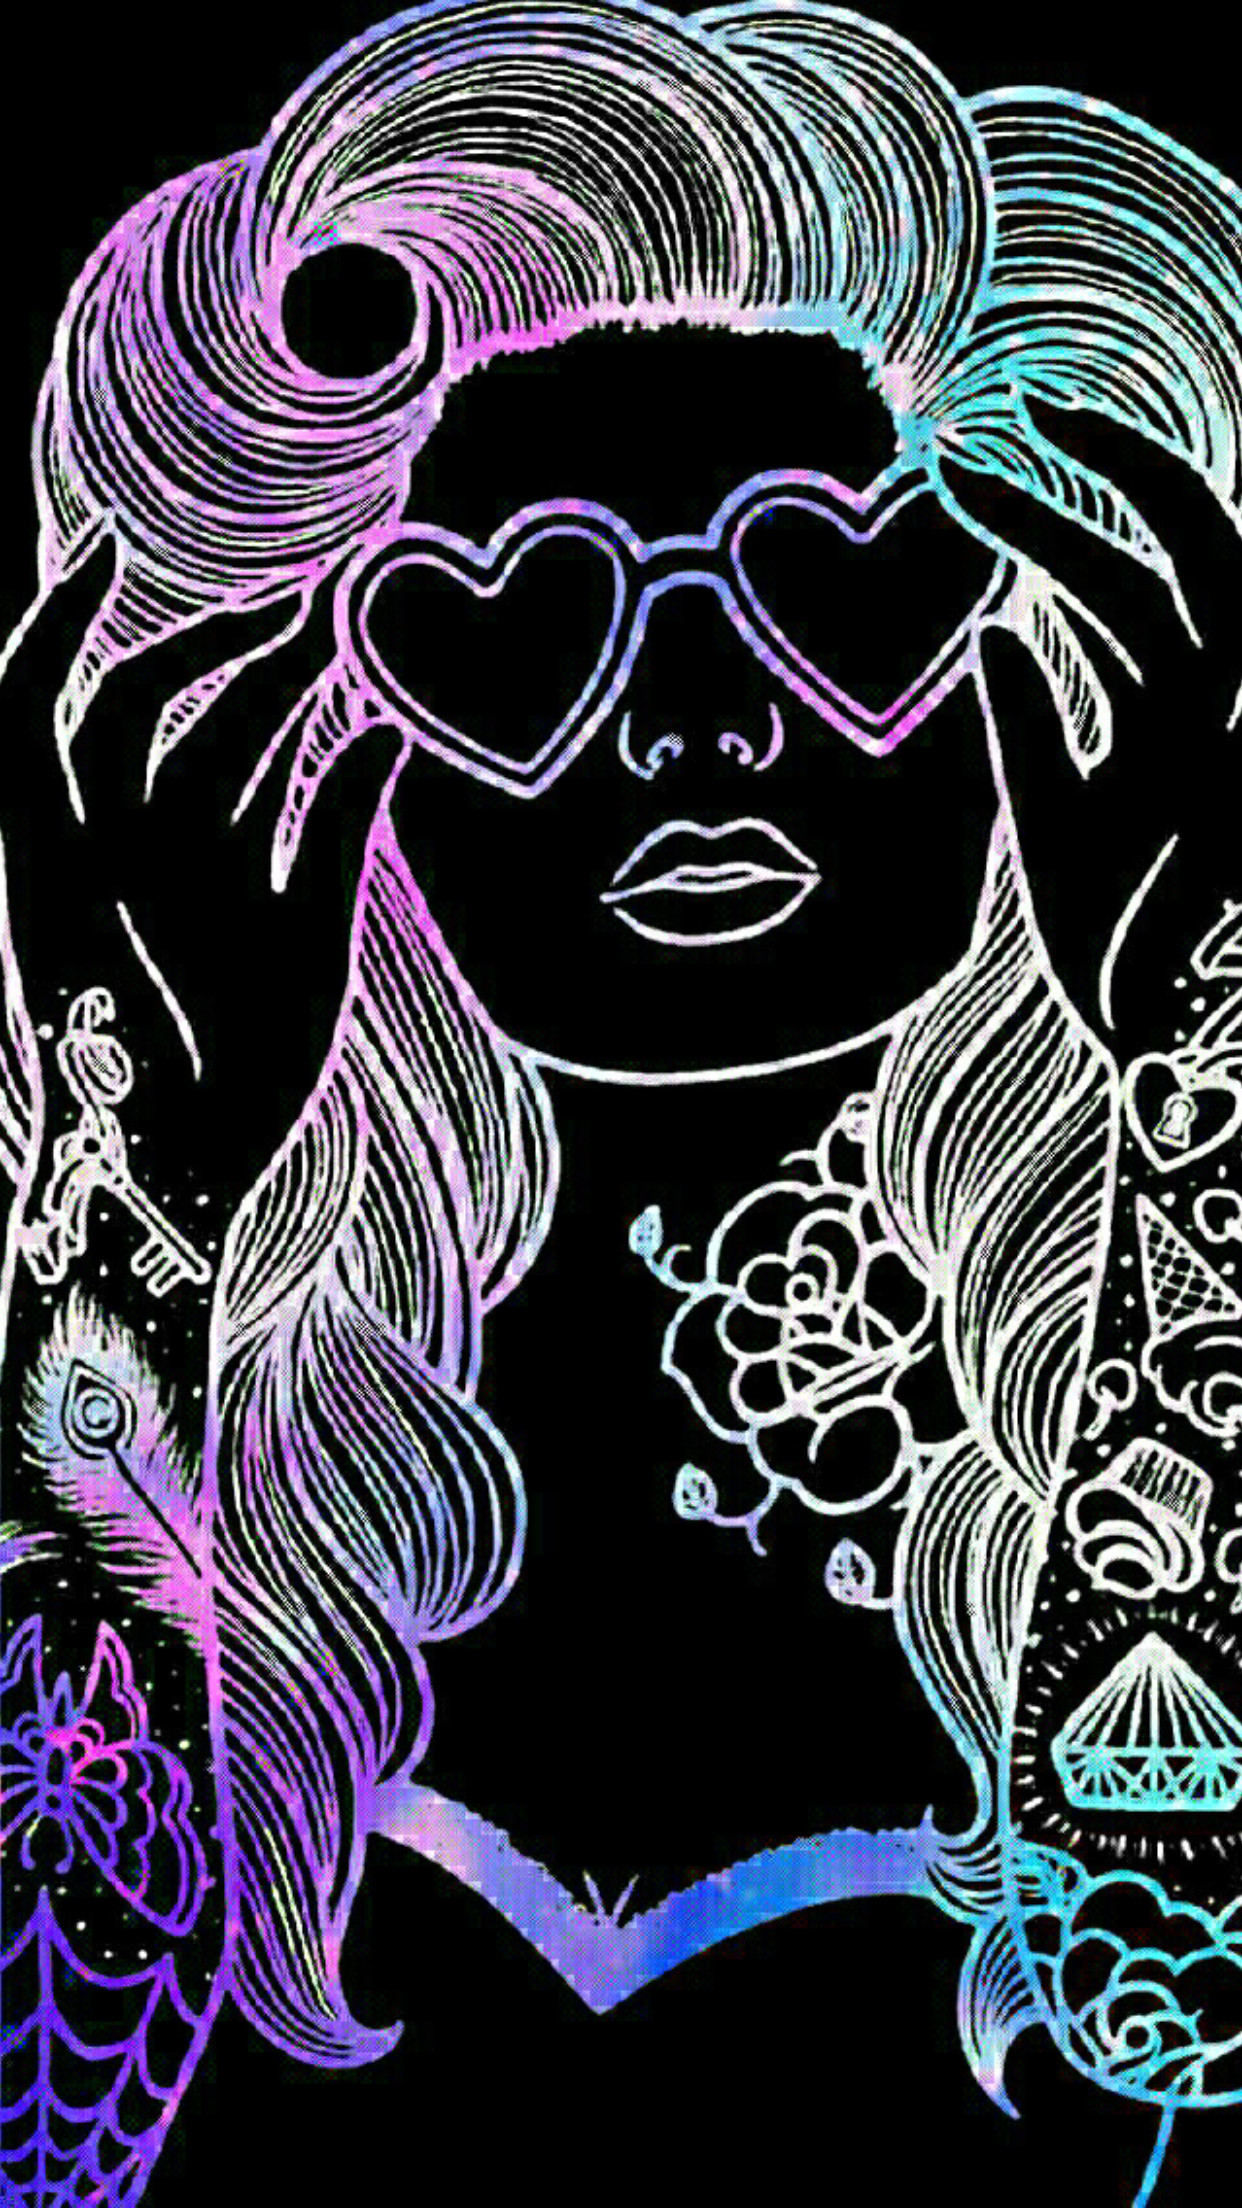 Wallpaper Backgrounds, Iphone Wallpapers, Glitter, Phones, Girly, All,  Peace, Funds